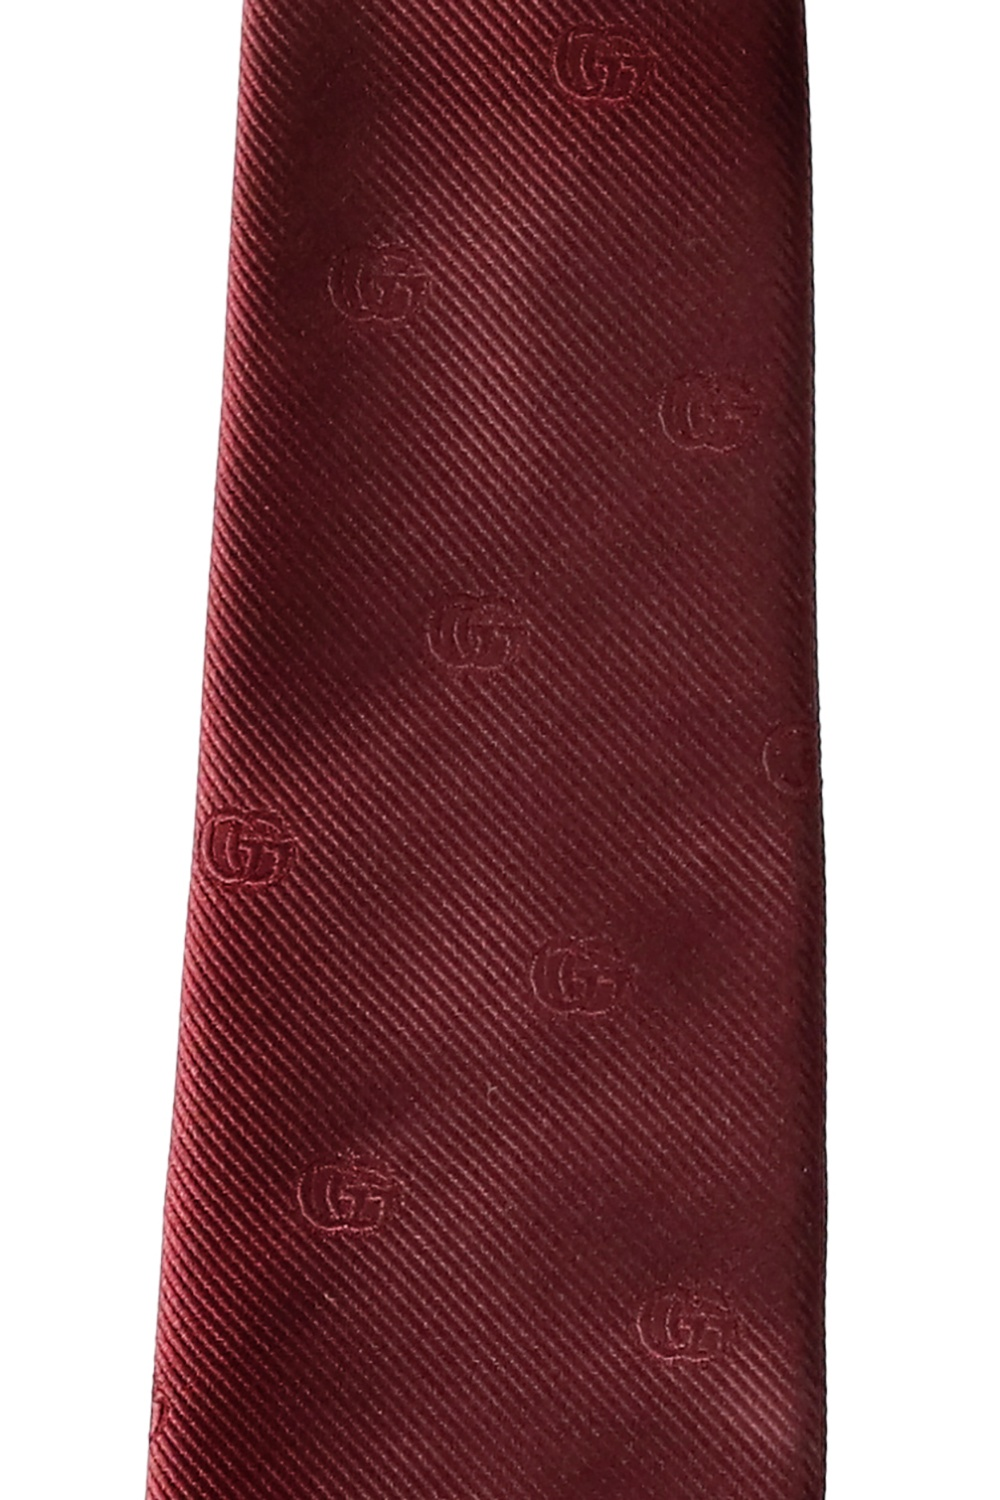 Gucci Silk tie with logo